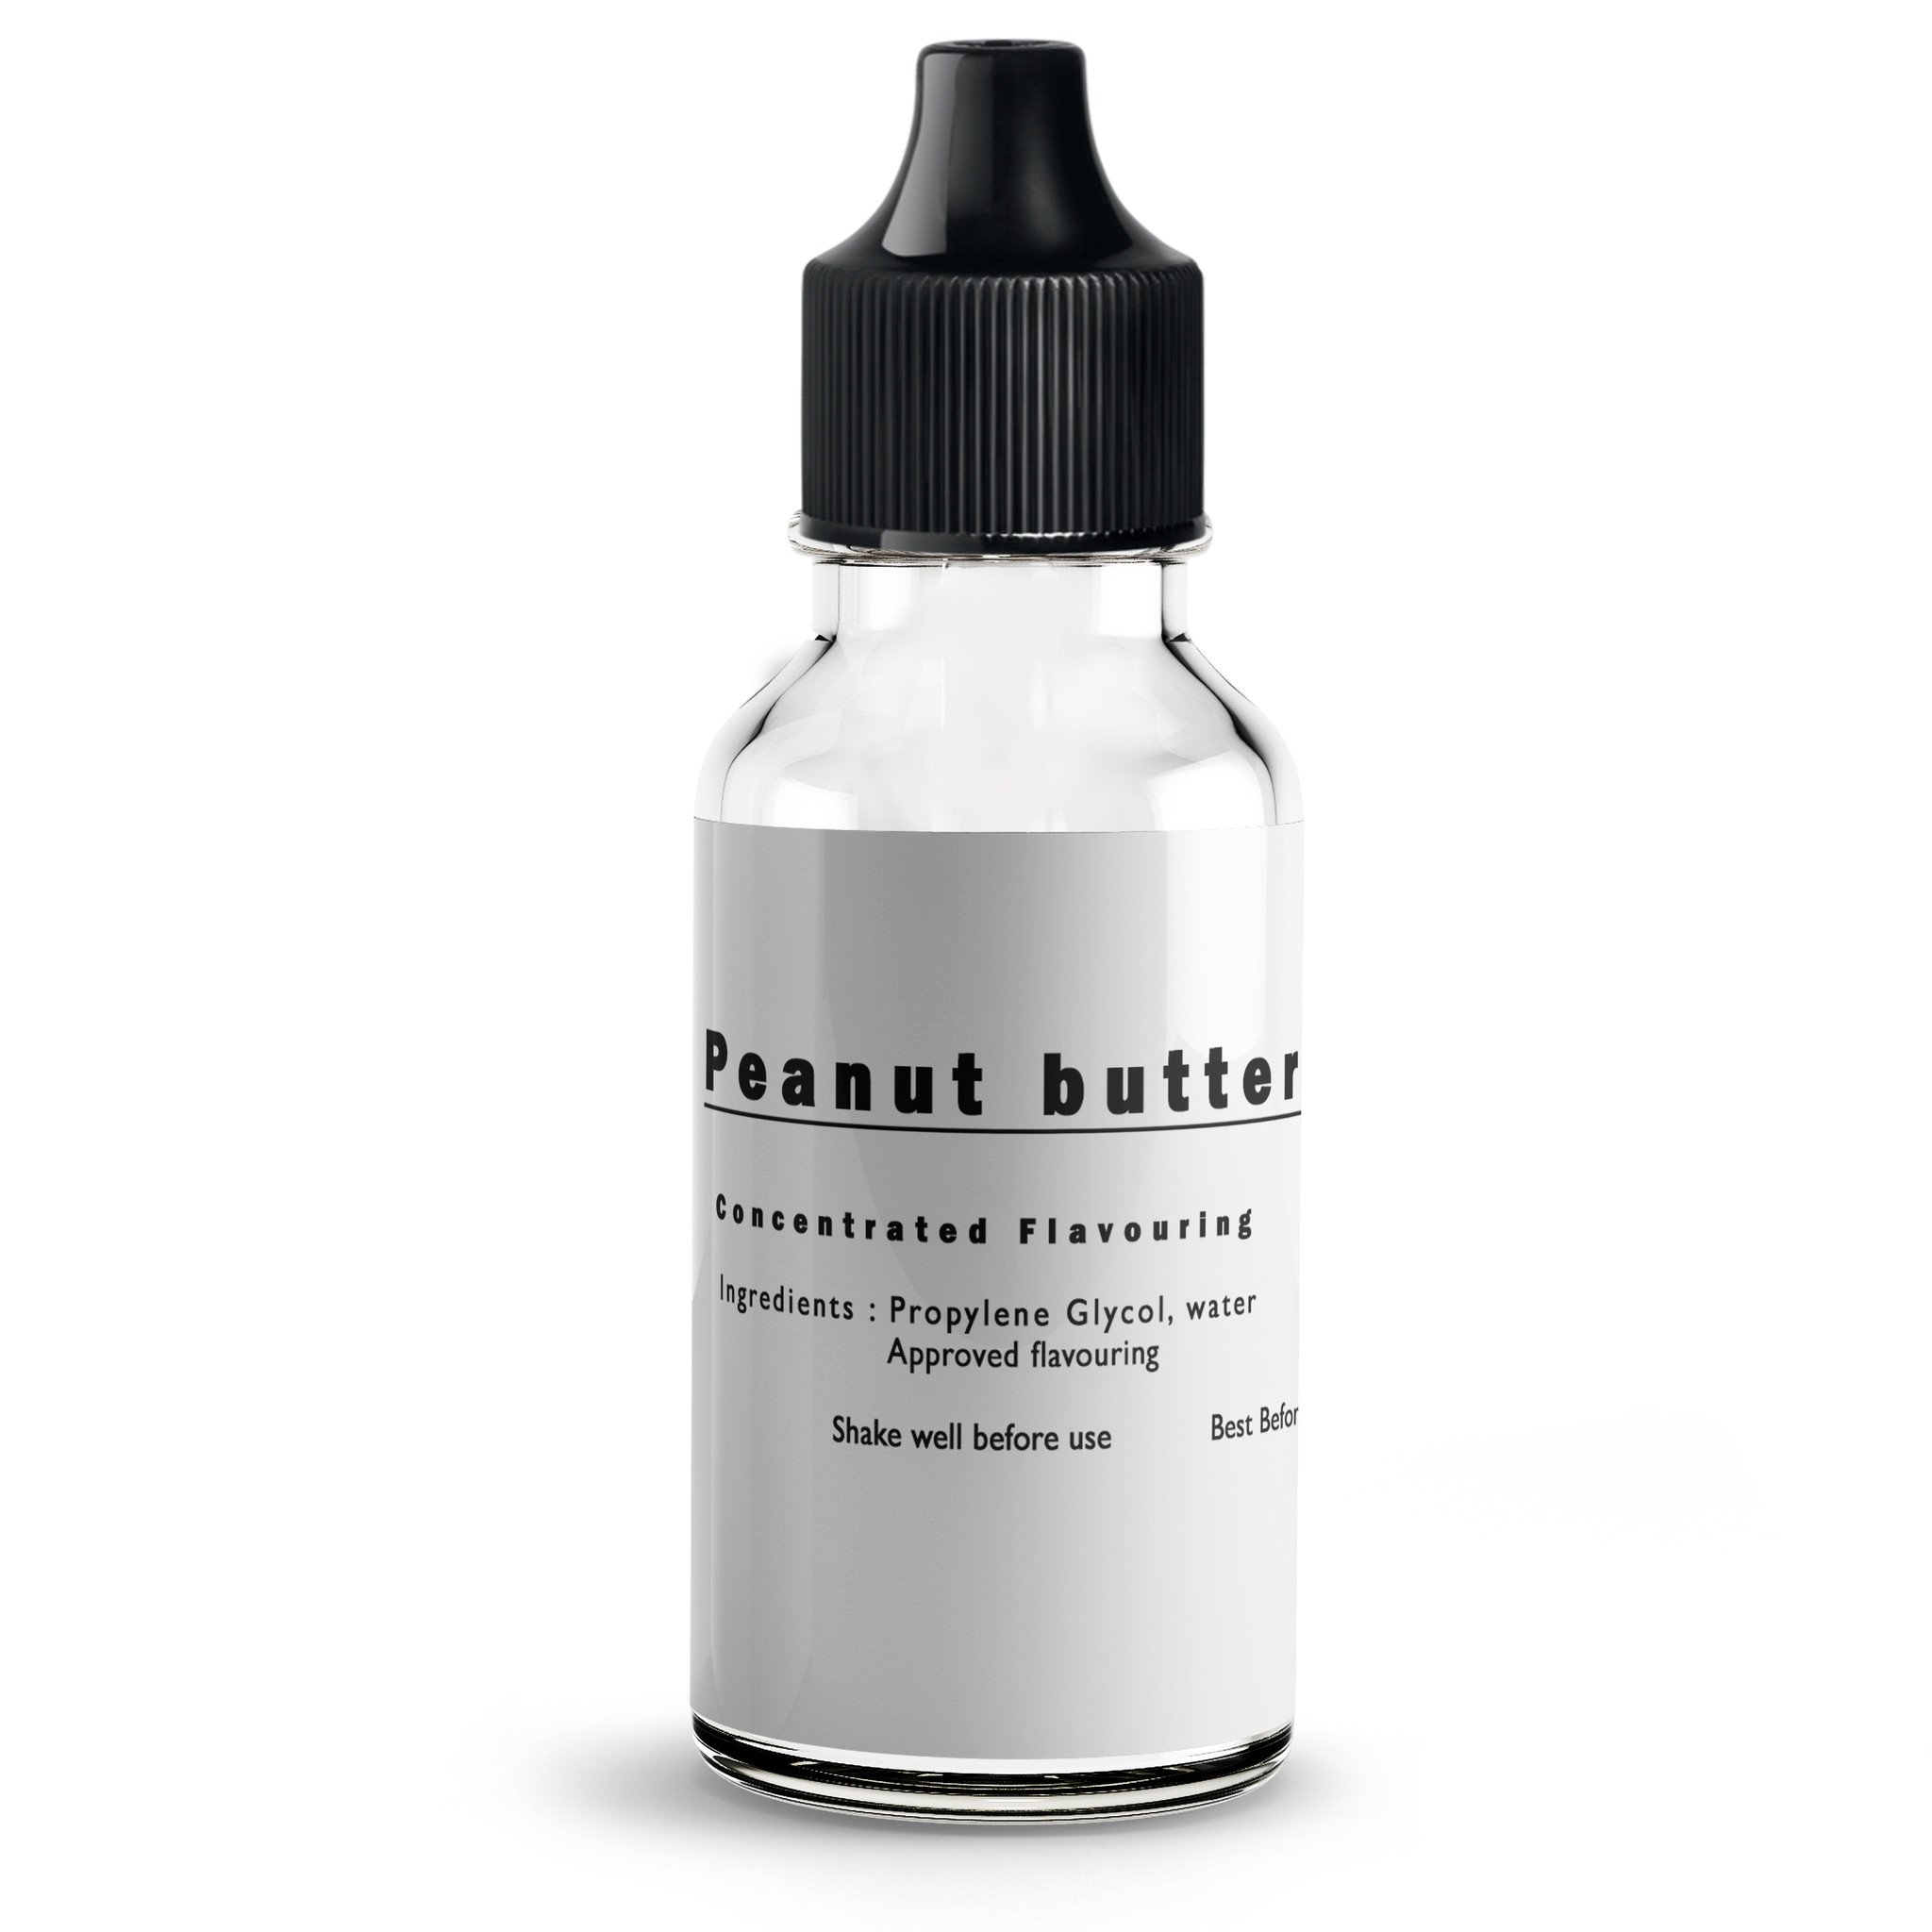 Peanut Butter Flavour Concentrate For E liquids